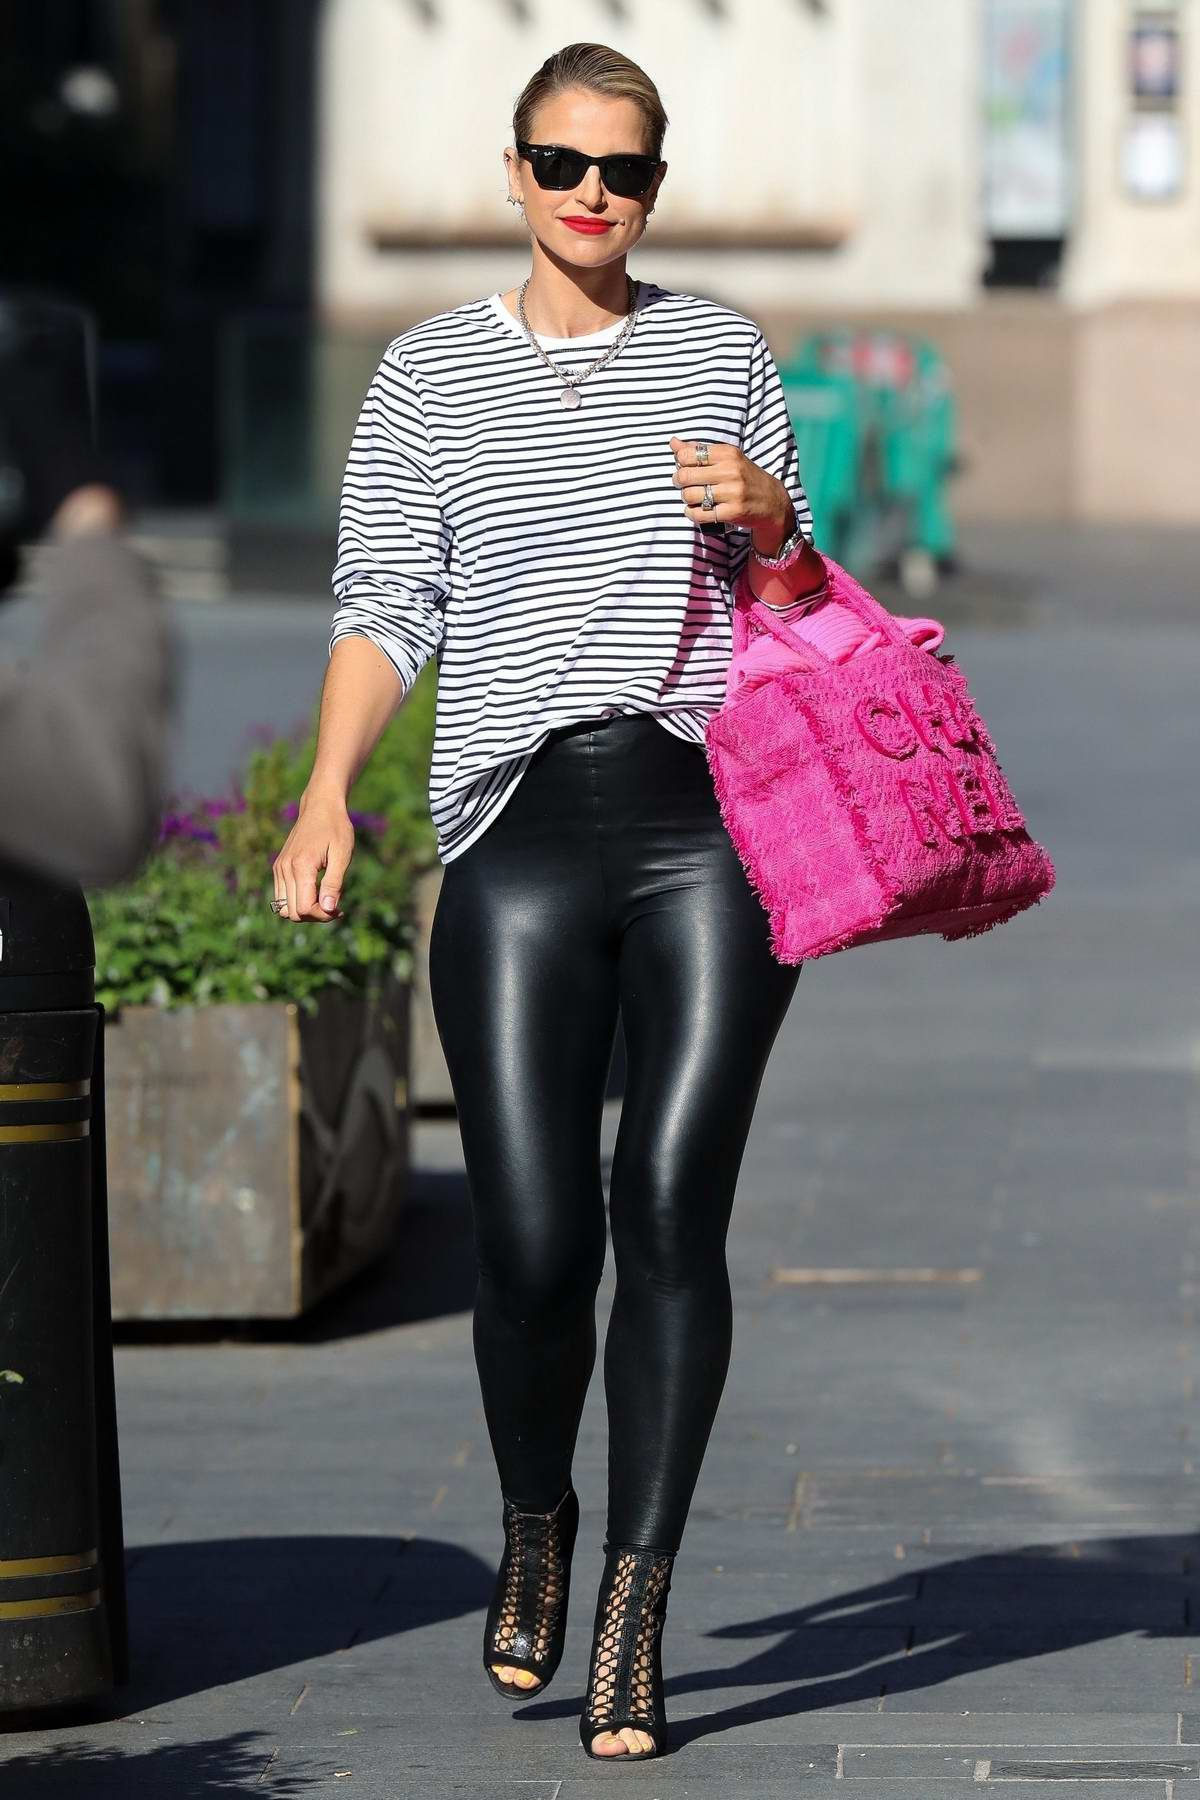 Vogue Williams looks stylish in PVC Leggings and striped top as she leaves Heart Radio in London, UK